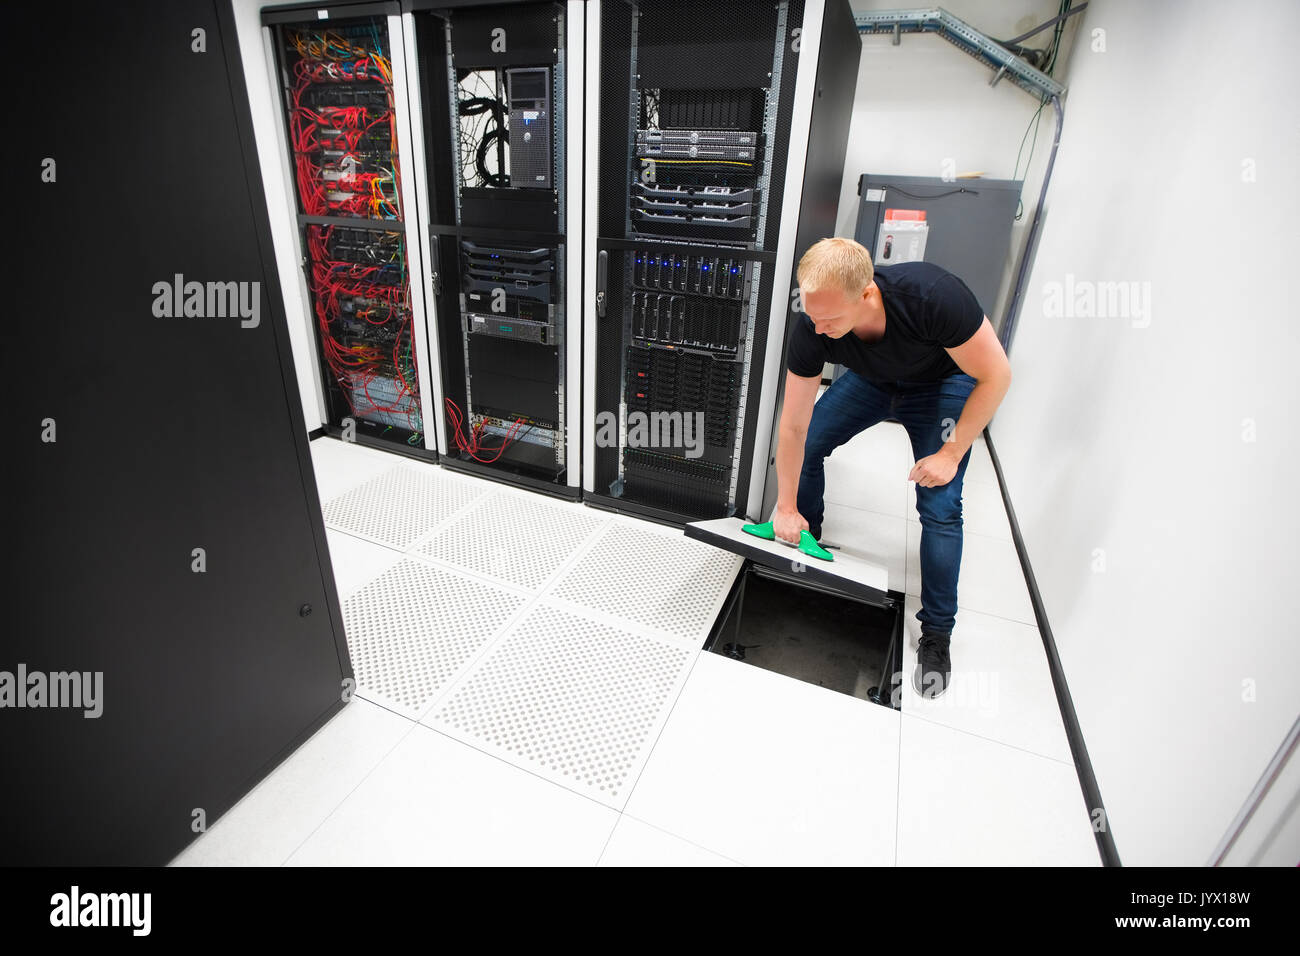 Computer engineer lifting floor tile using suction cups in datac computer engineer lifting floor tile using suction cups in datac dailygadgetfo Choice Image